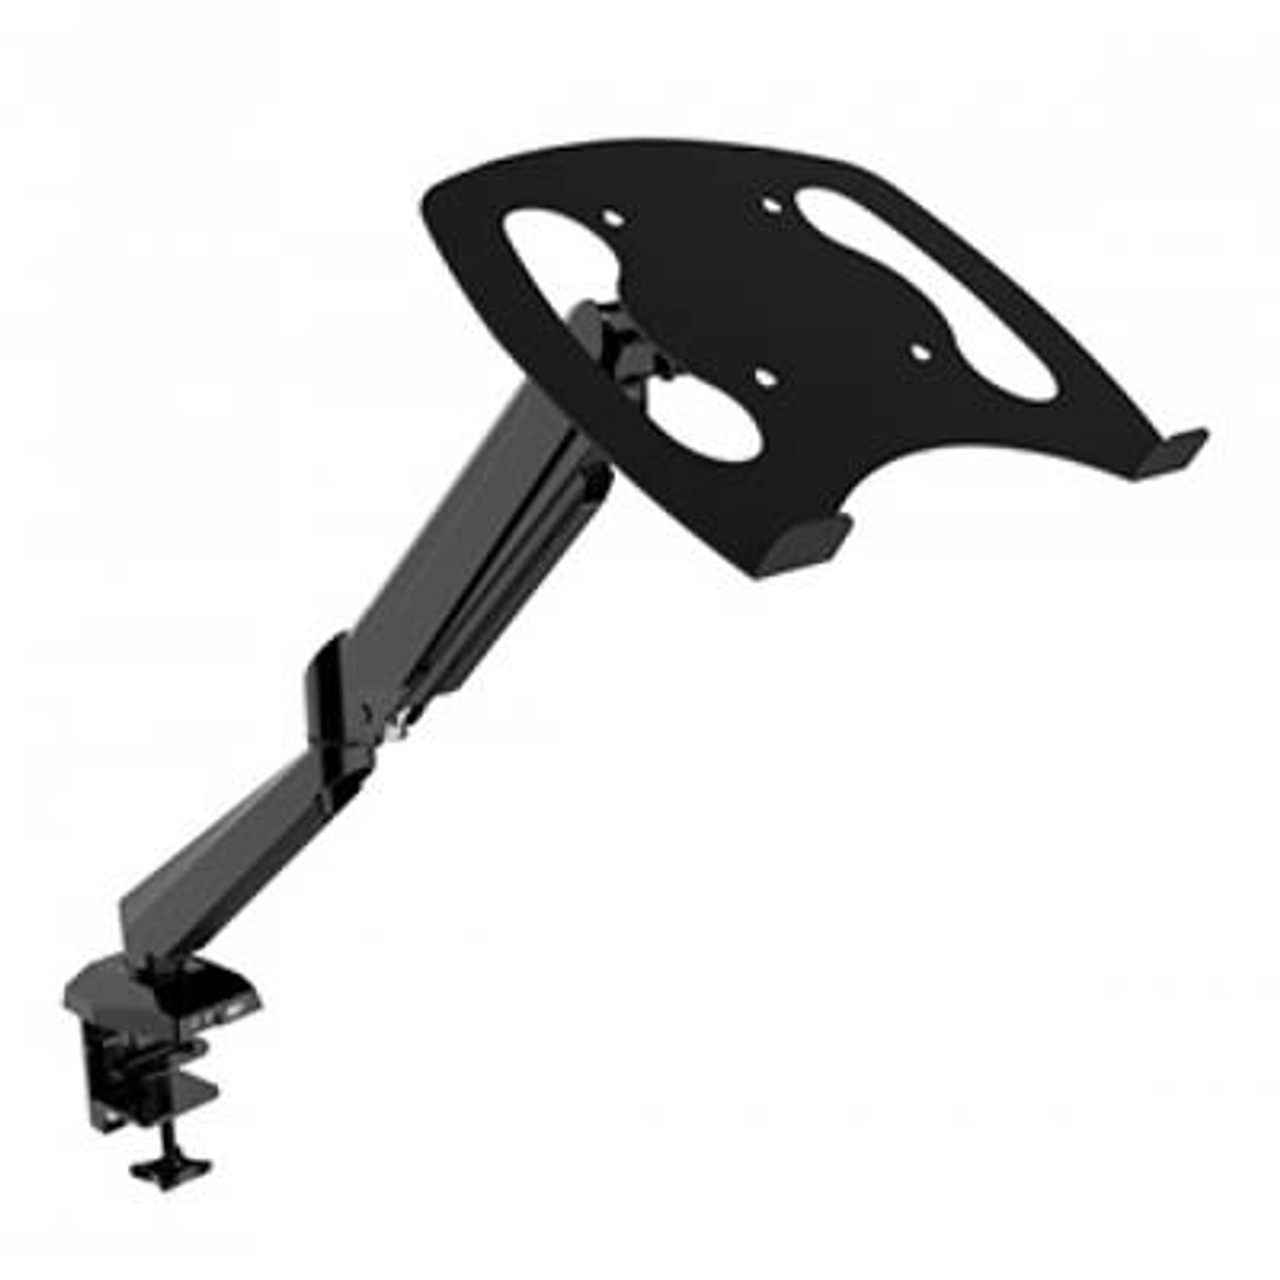 Image for Vision Mounts Gas Spring Desk Clamp Notebook Holder Arm with USB Port CX Computer Superstore